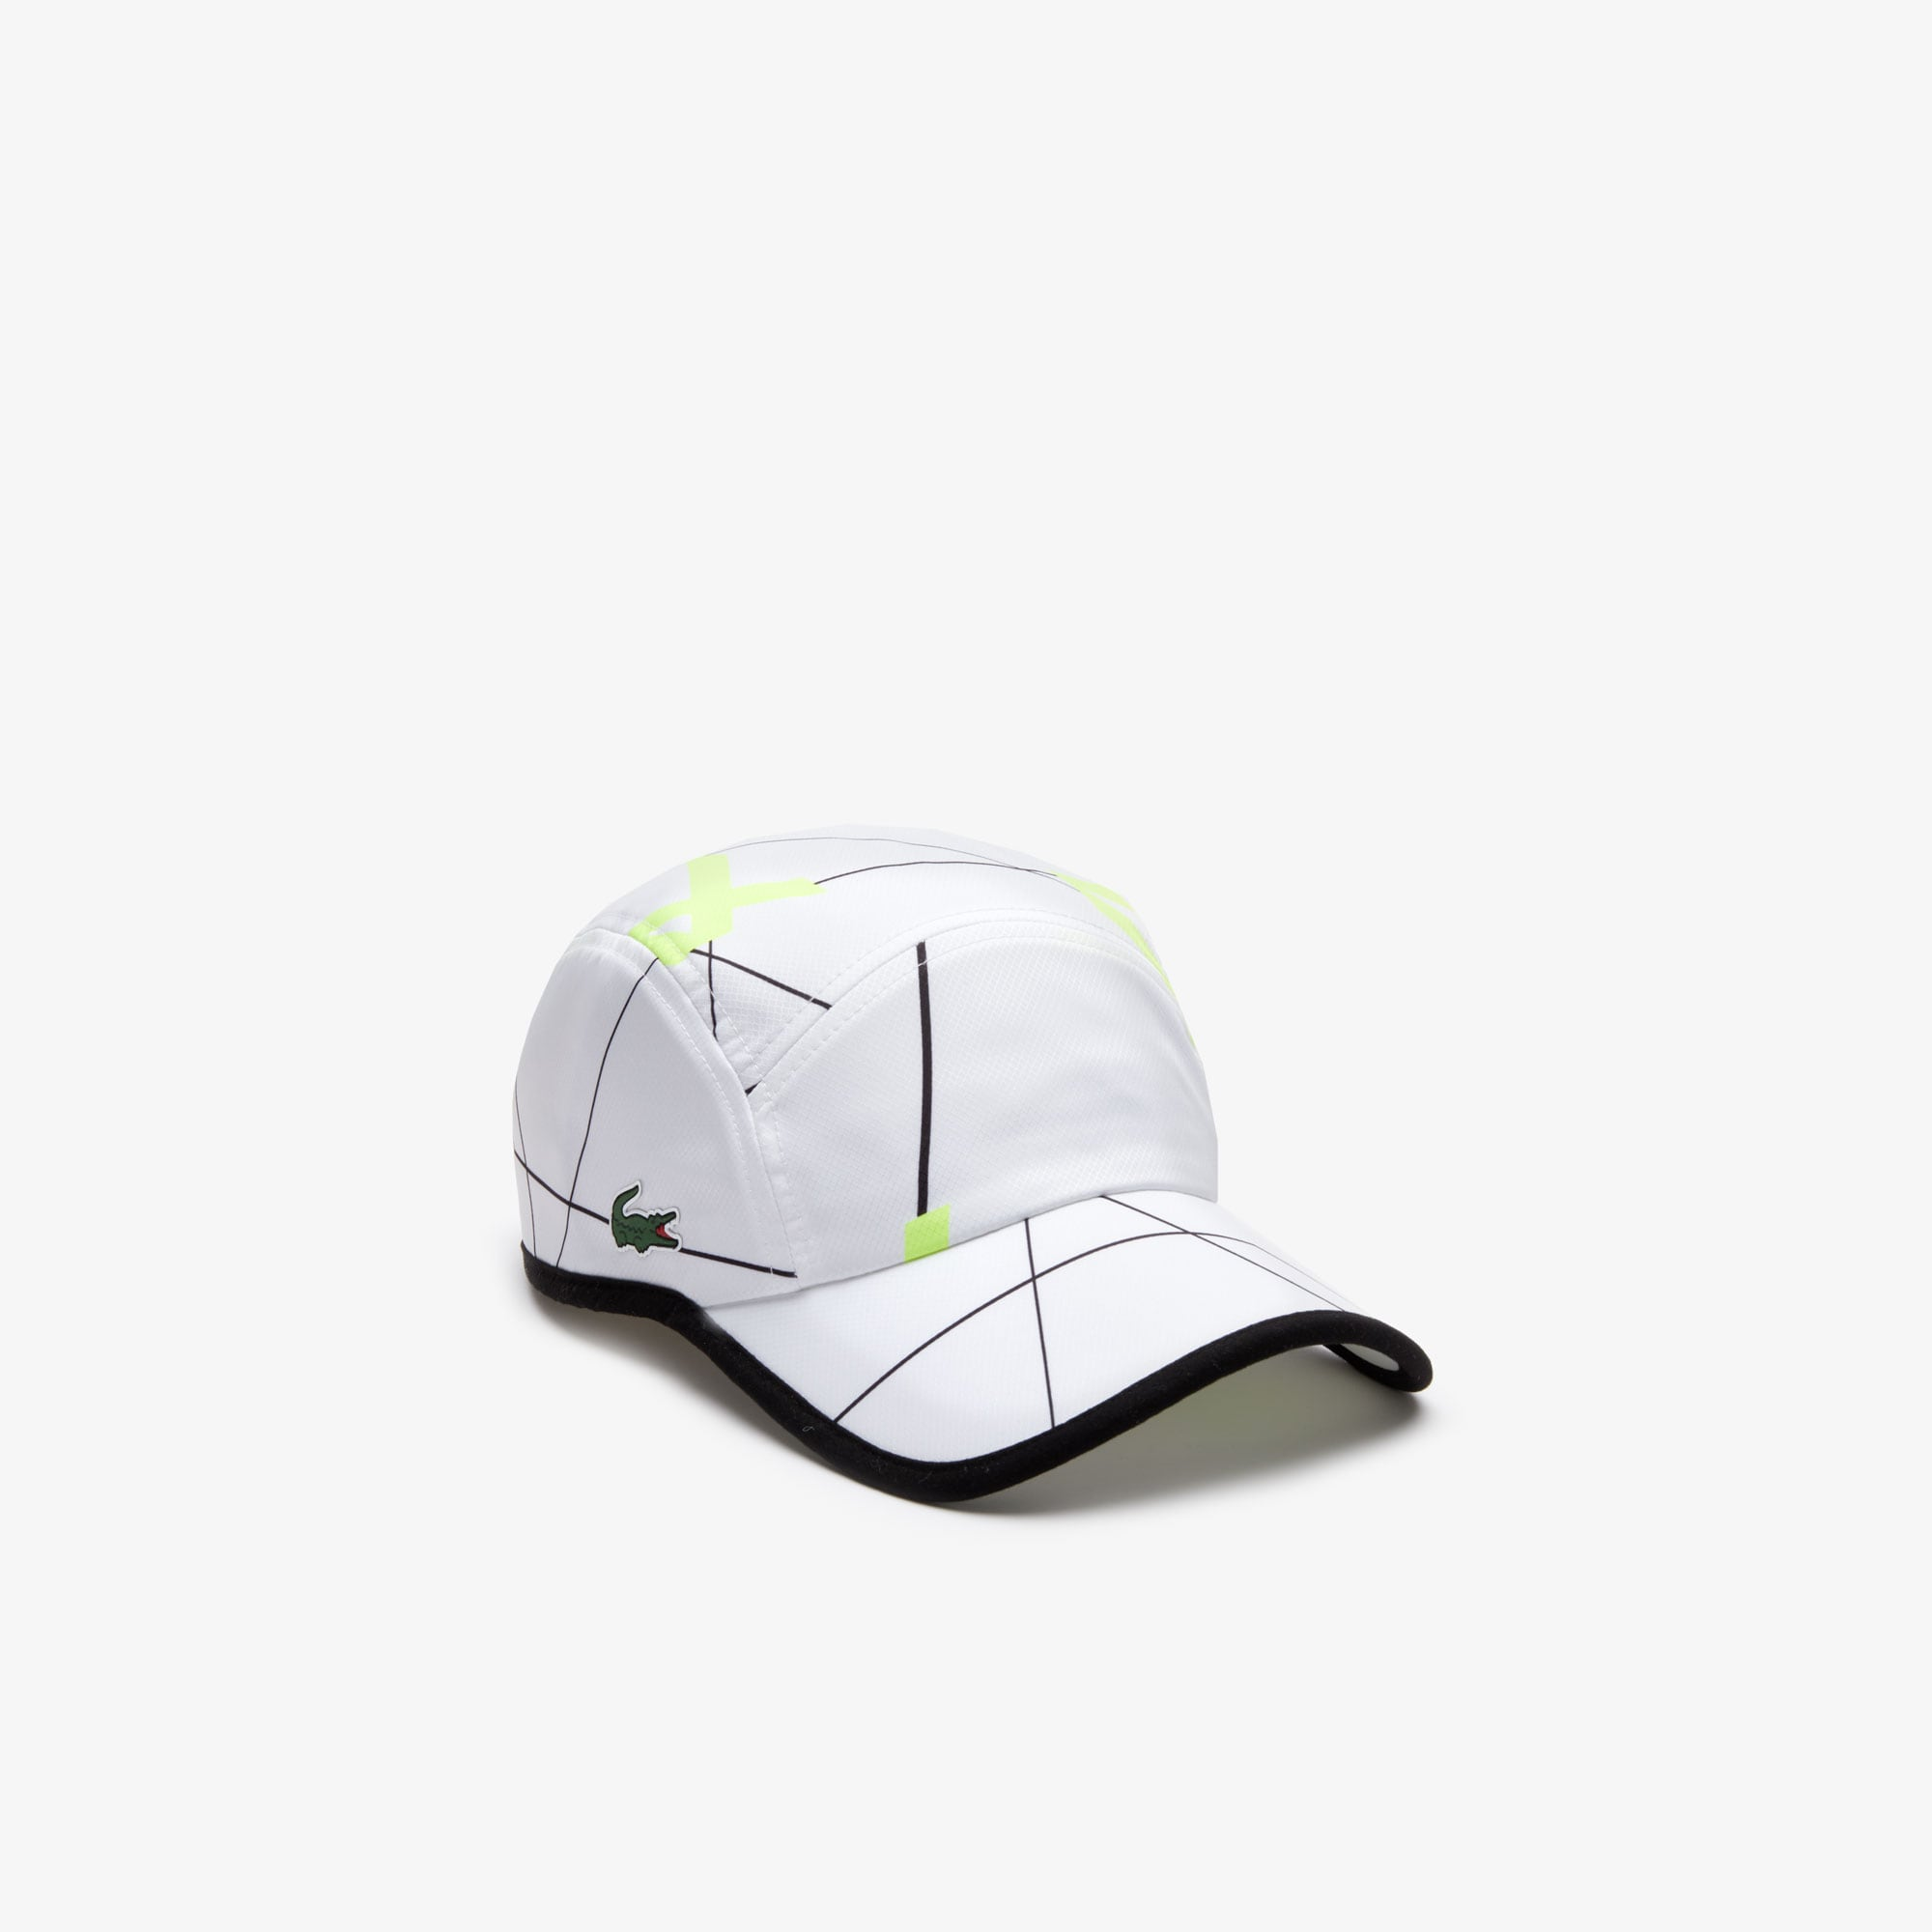 4390896698099 + 1 color. New. Men's SPORT Geometric Print Tennis Cap